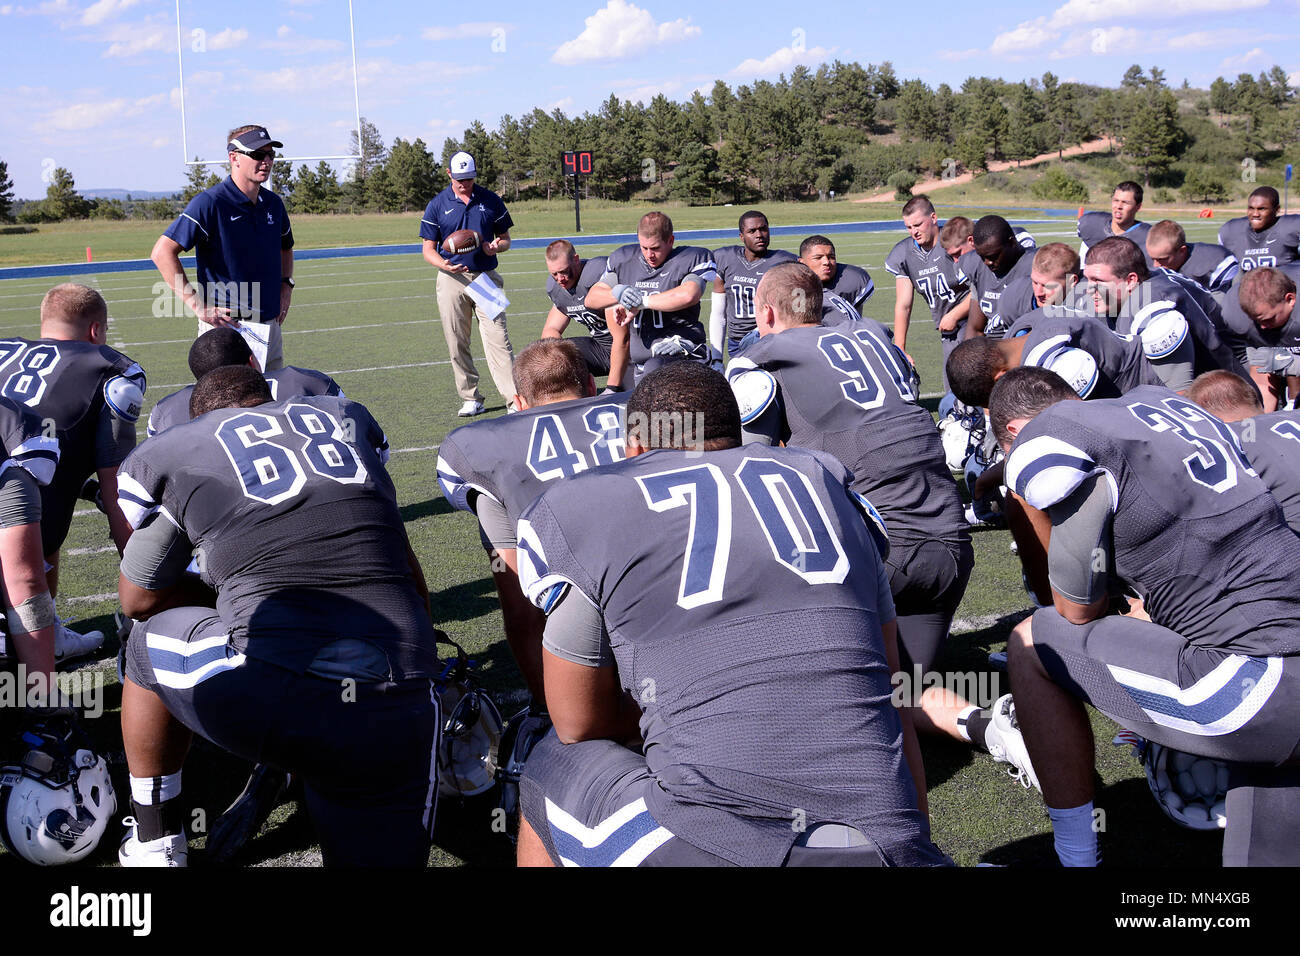 Head Coach Scott Thiessen Speaks To The U S Air Force Academy Preparatory School Huskies After They Were Defeated By The New Mexico Military Institute In Their Home Opener 41 26 At Husky Field